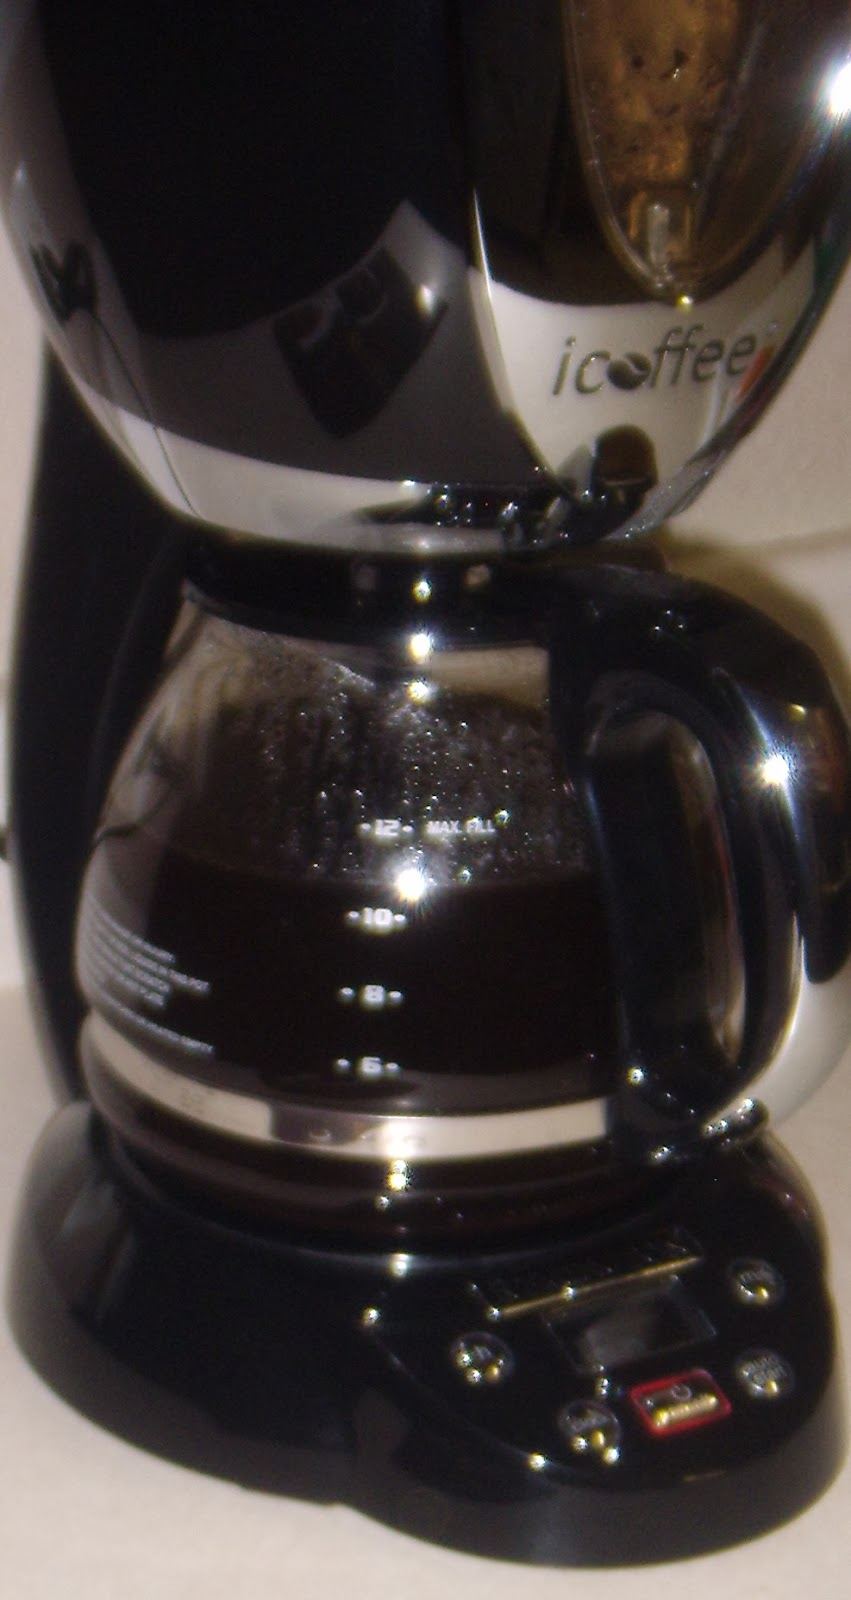 Mommie of 2: iCoffee Review and #Giveaway 3/8 CLOSED